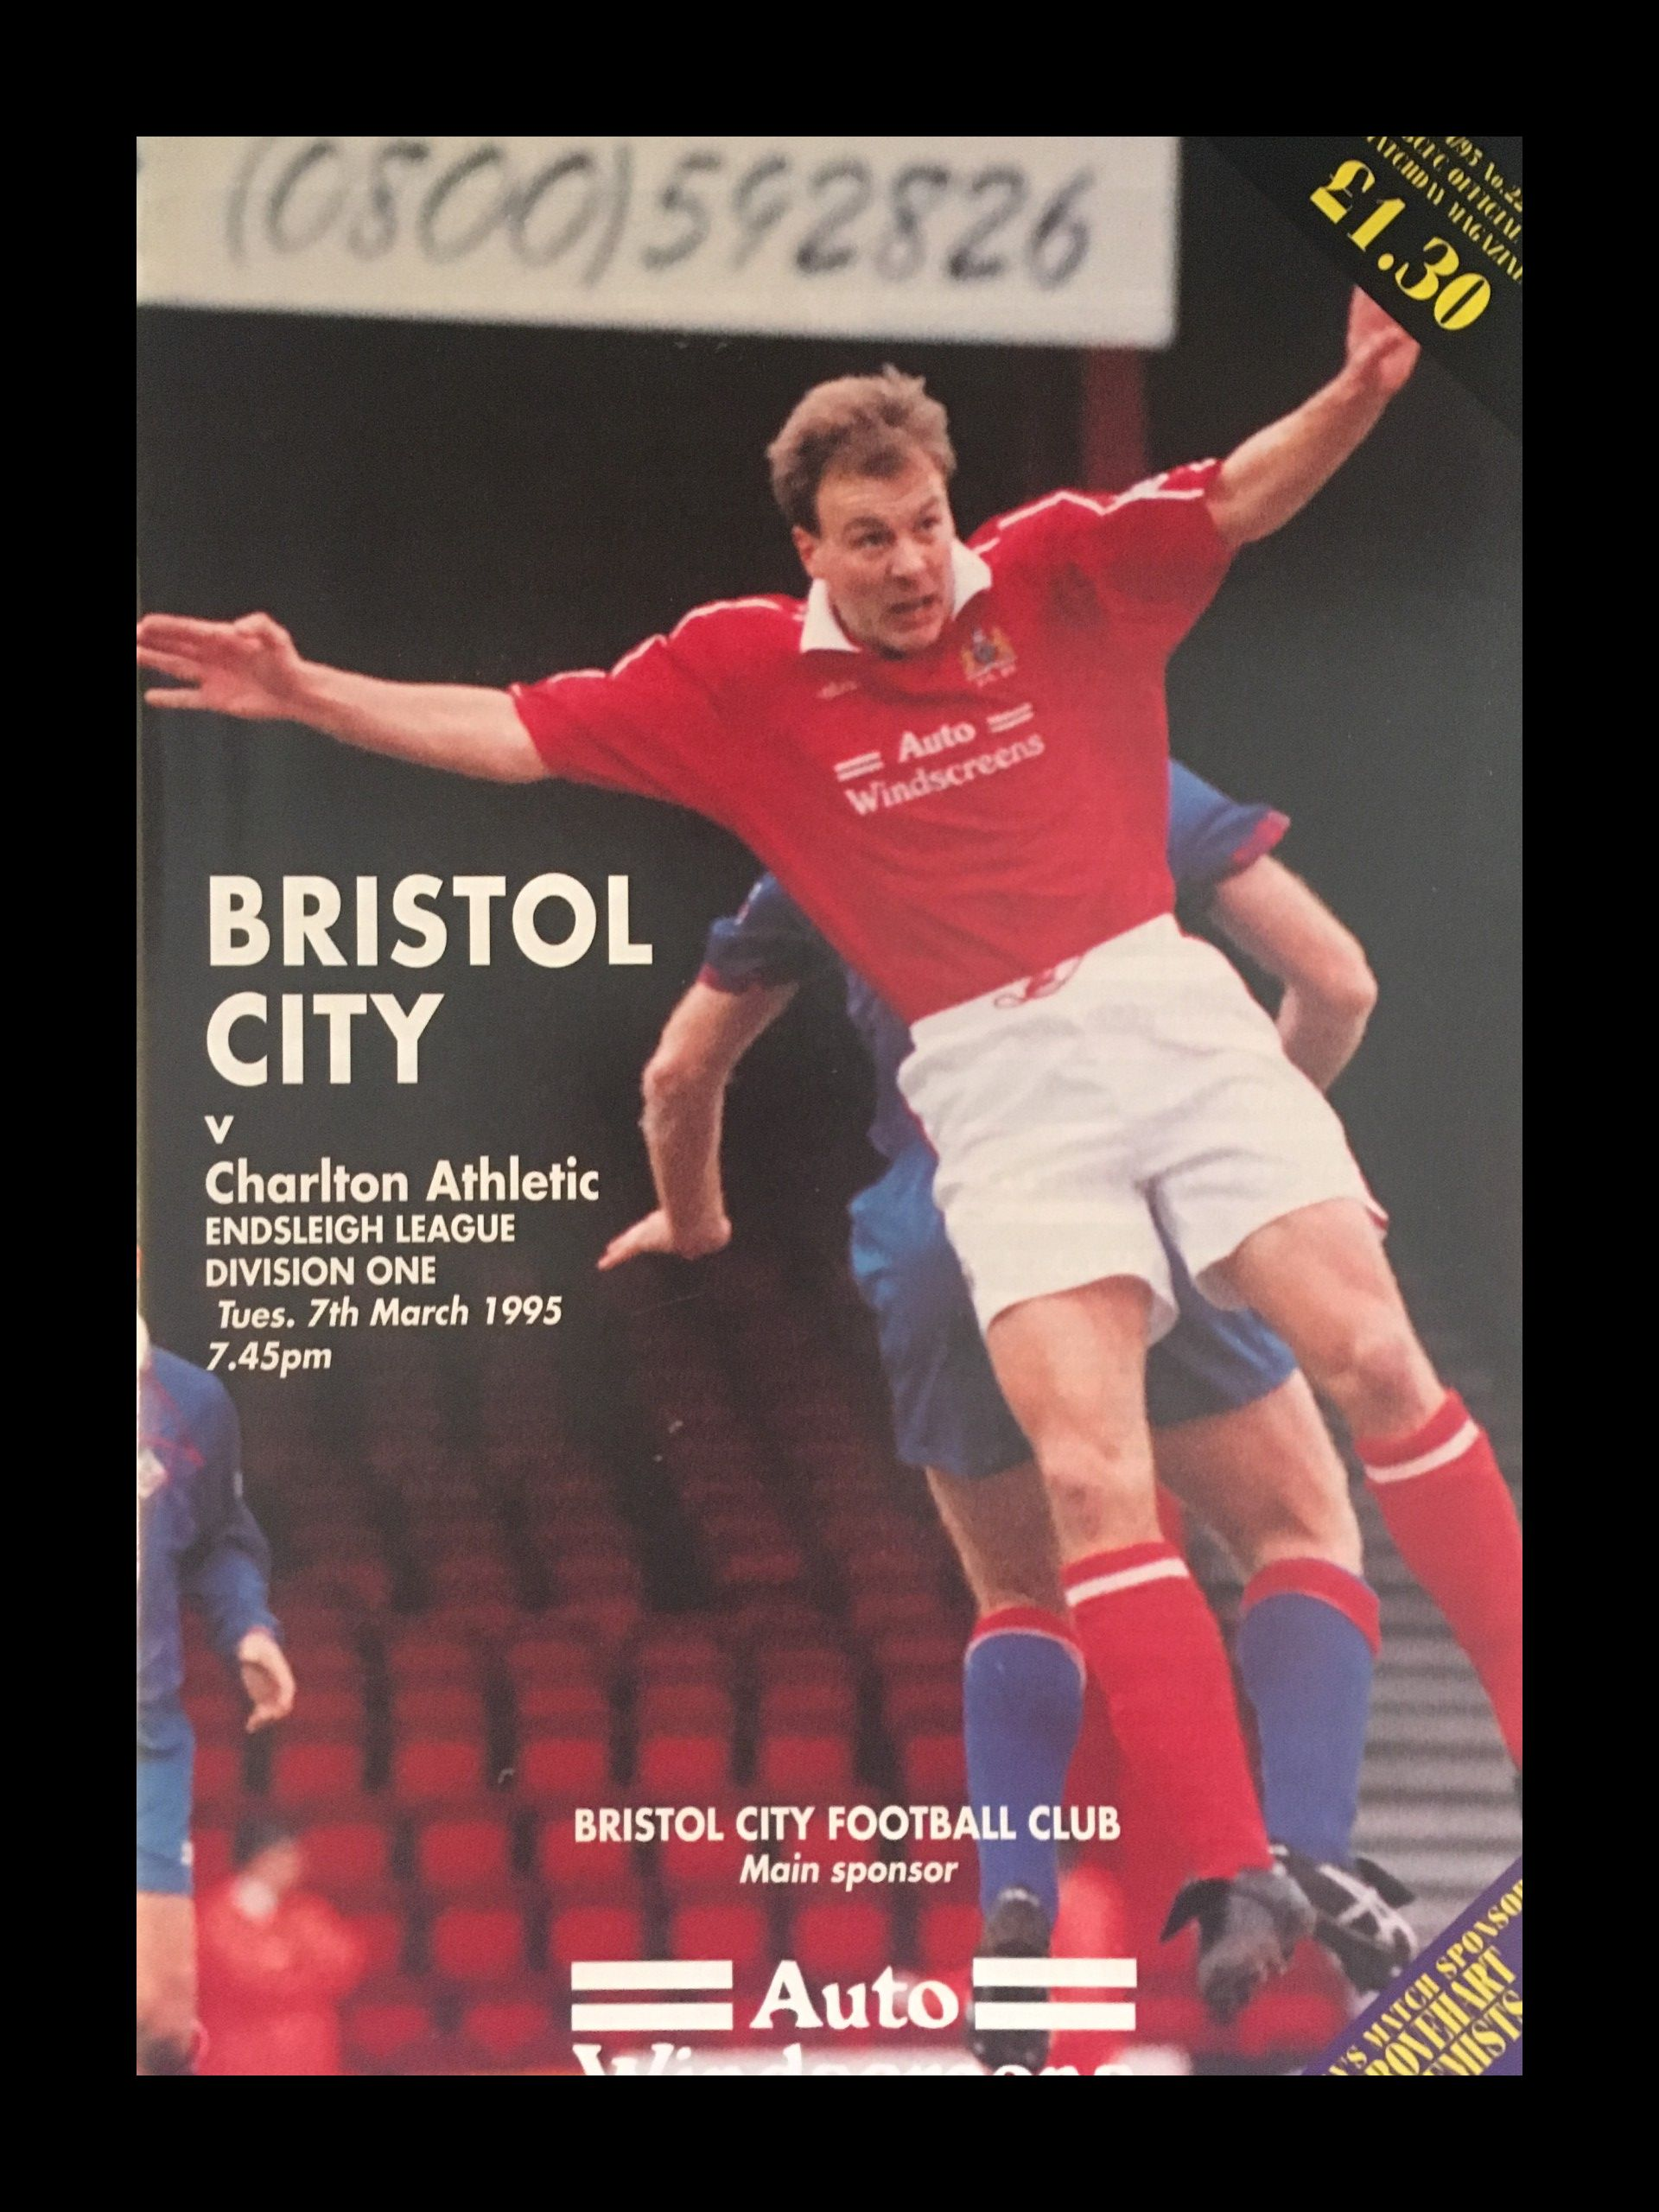 Bristol City v Charlton Athletic 07-03-1995 Programme